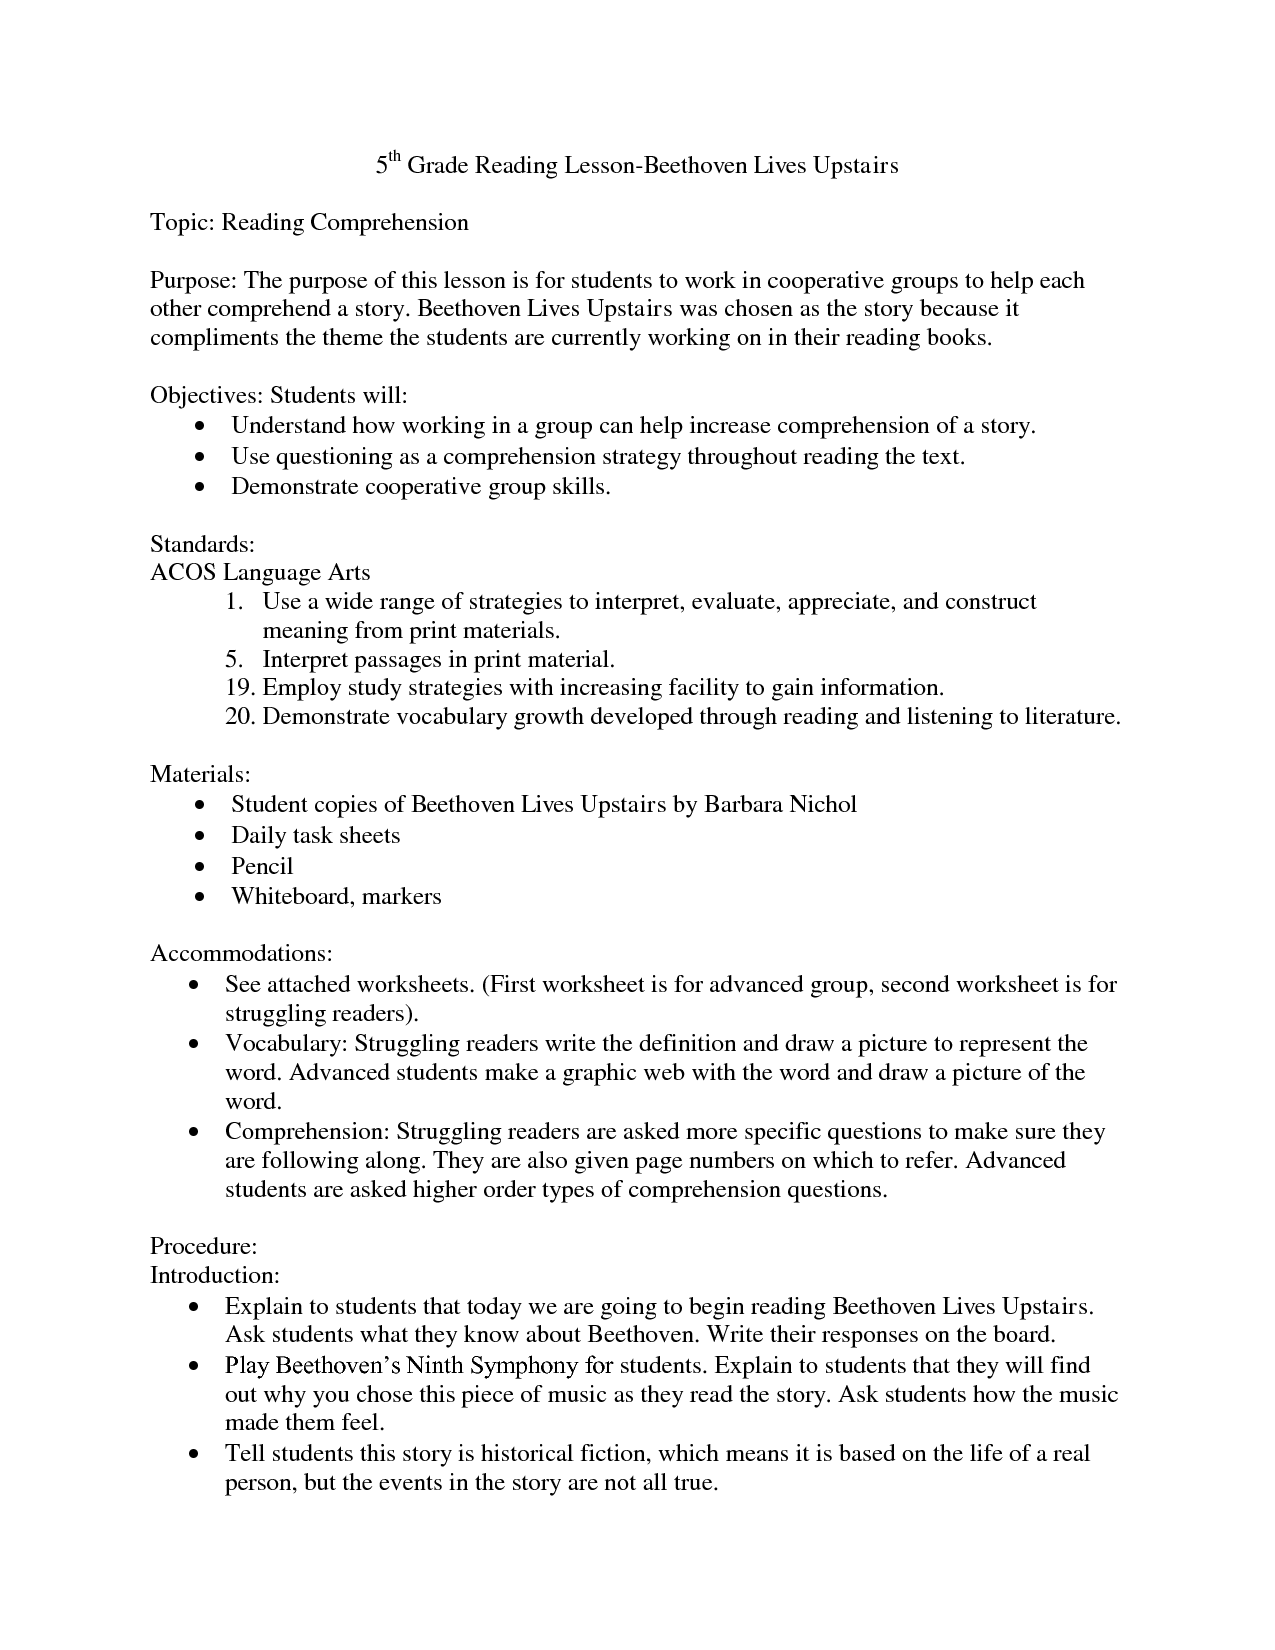 15 Best Images Of Reading Comprehension Worksheets For Grade 1